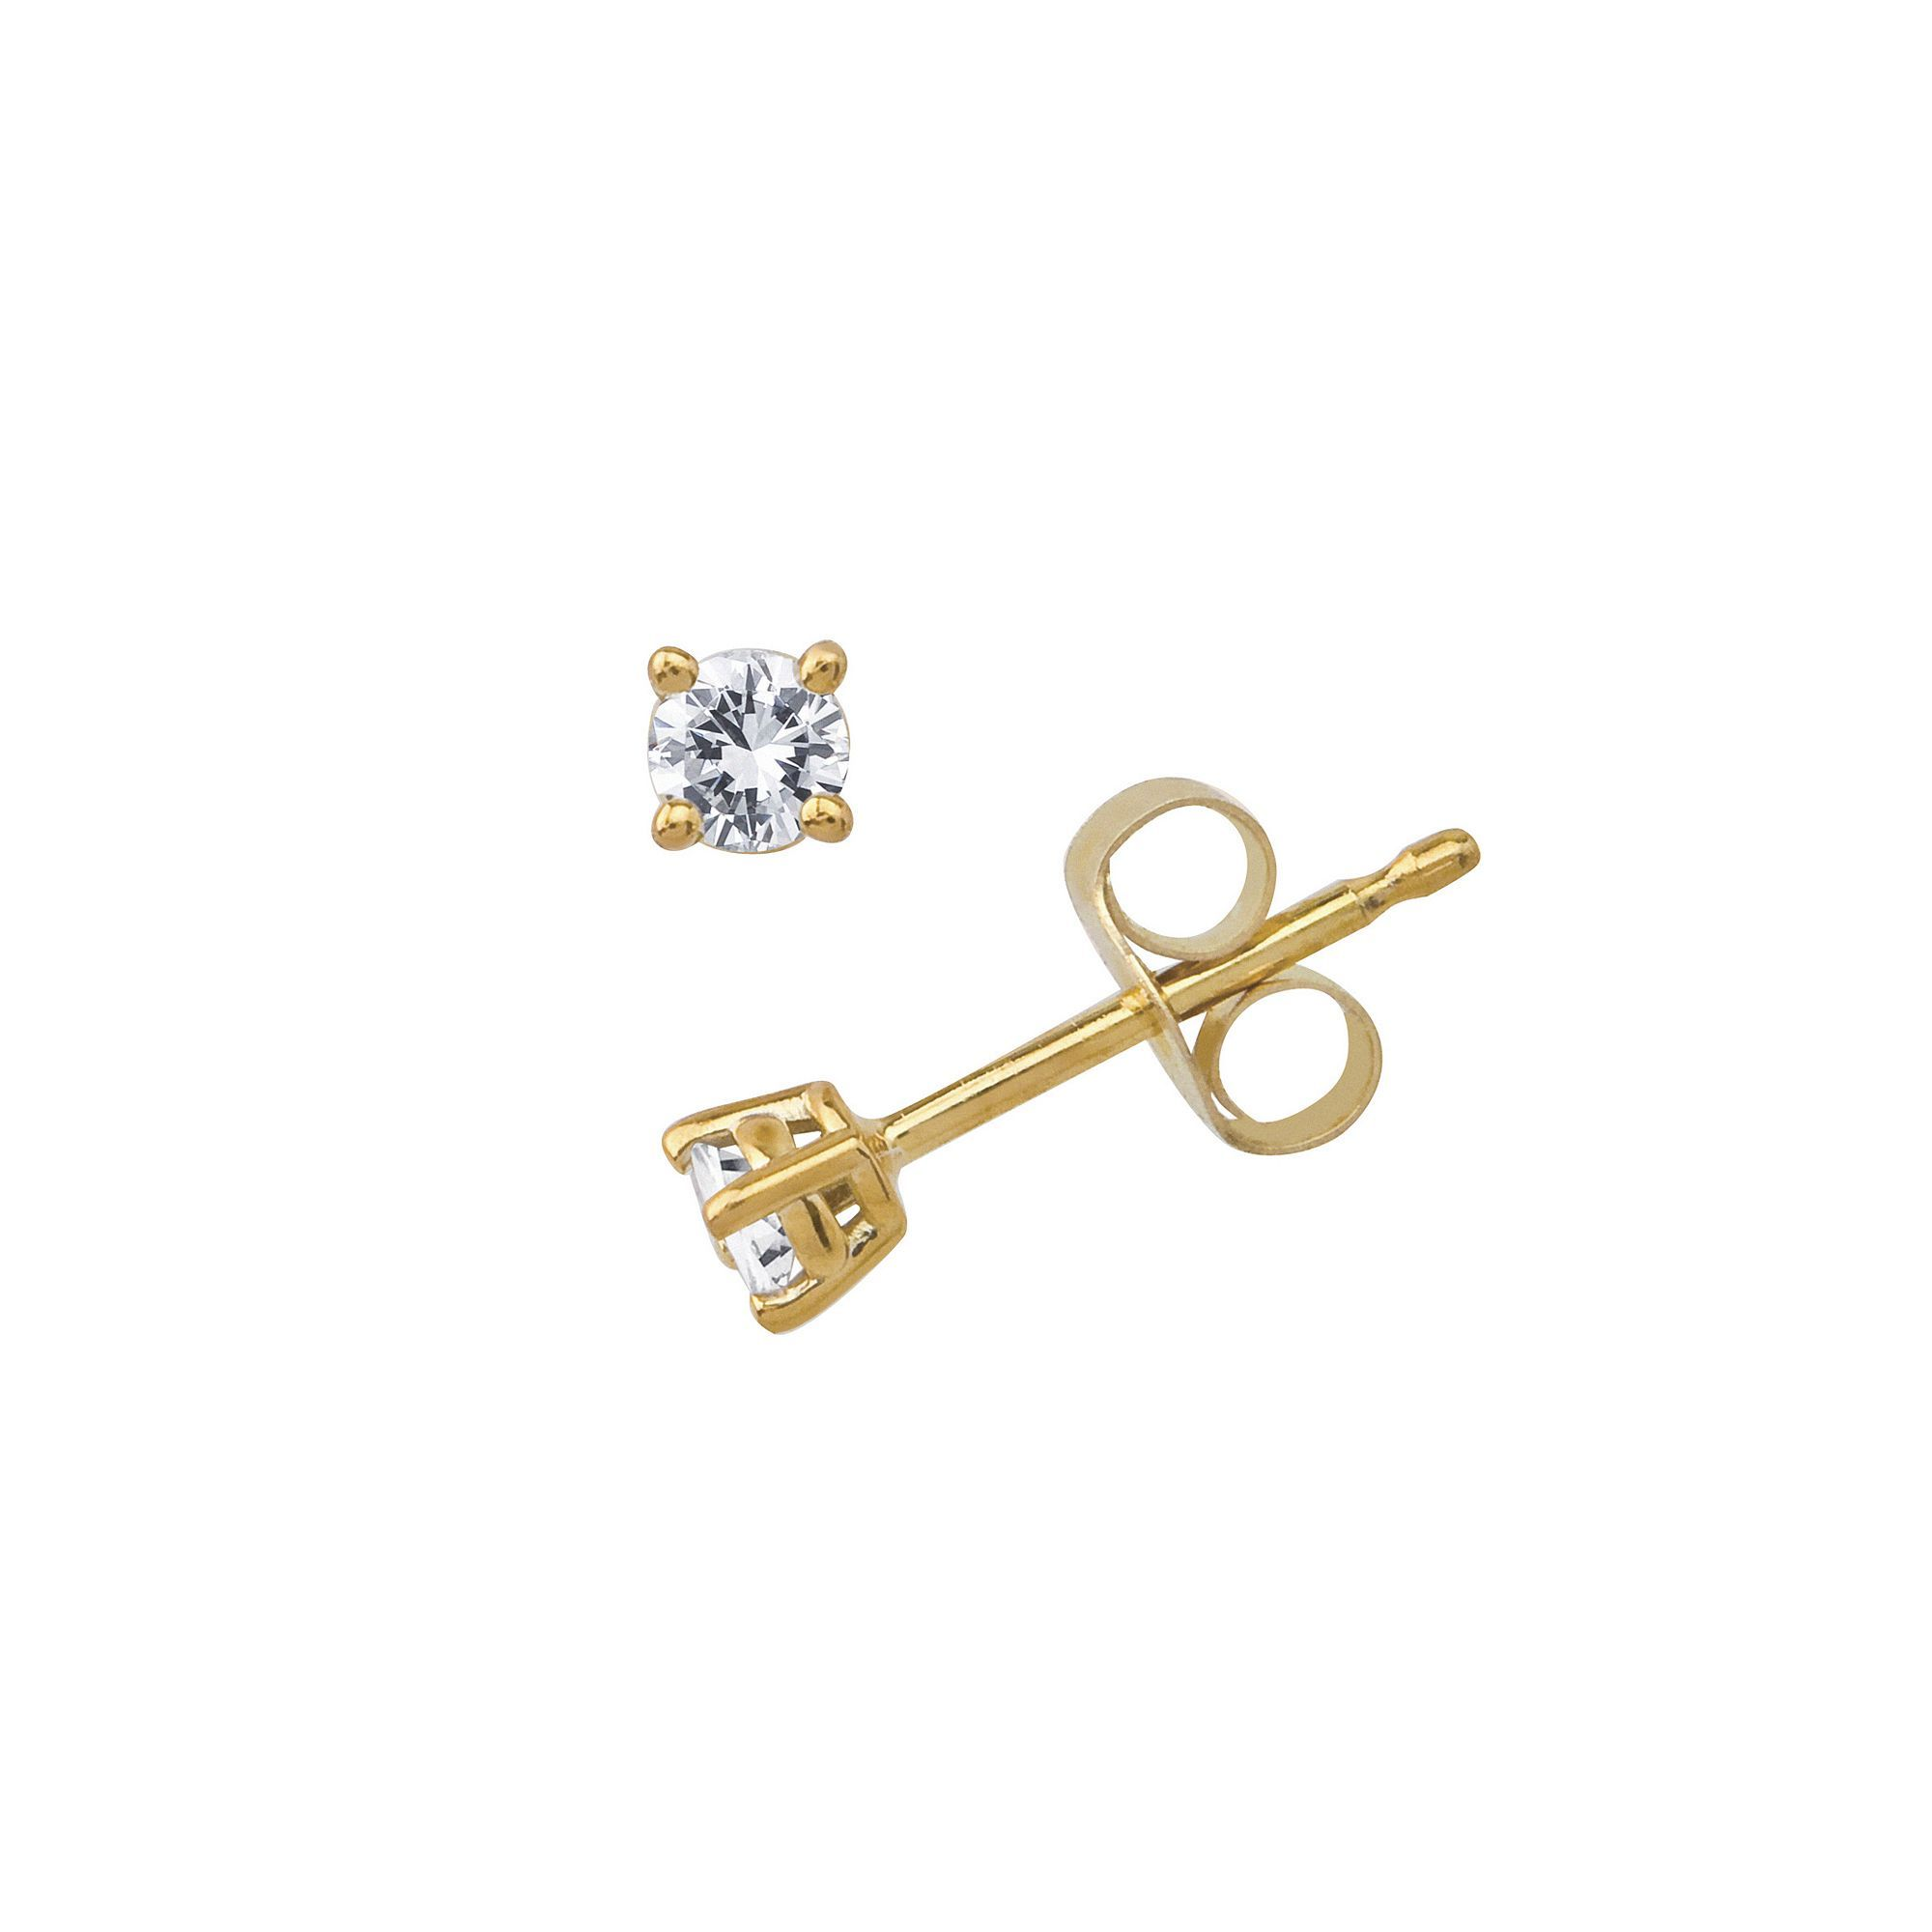 10k Gold 1 10 Ct T W Diamond Stud Earrings Stud Earrings Diamond Studs Earrings